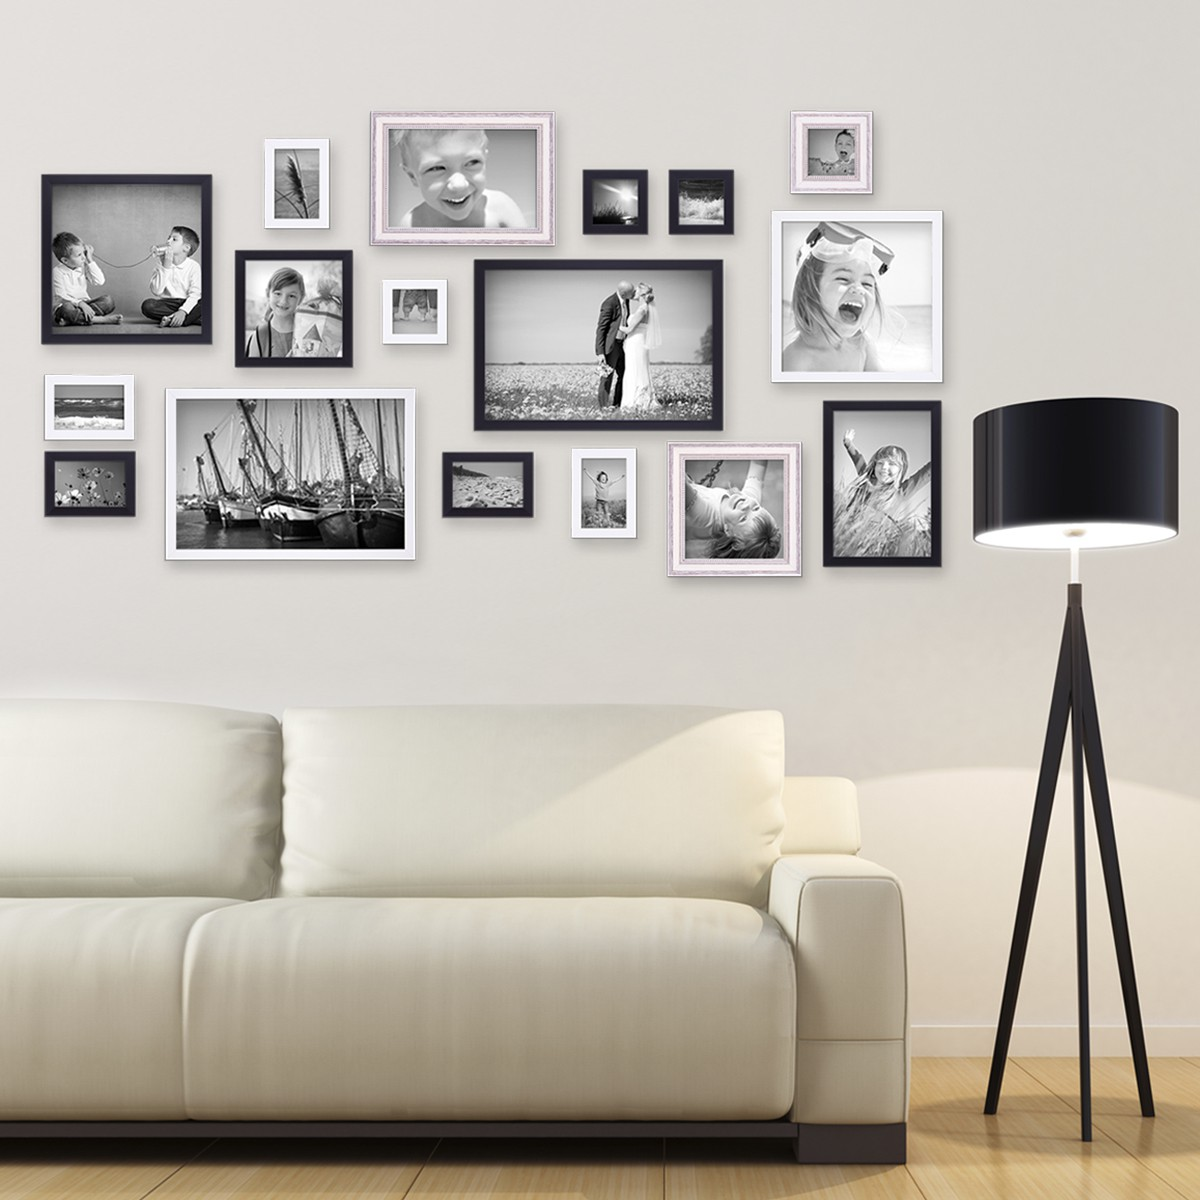 17er set bilderrahmen f r grosse bilderwand massivholz gr en 10x10 bis 30x45 cm inkl zubeh r. Black Bedroom Furniture Sets. Home Design Ideas